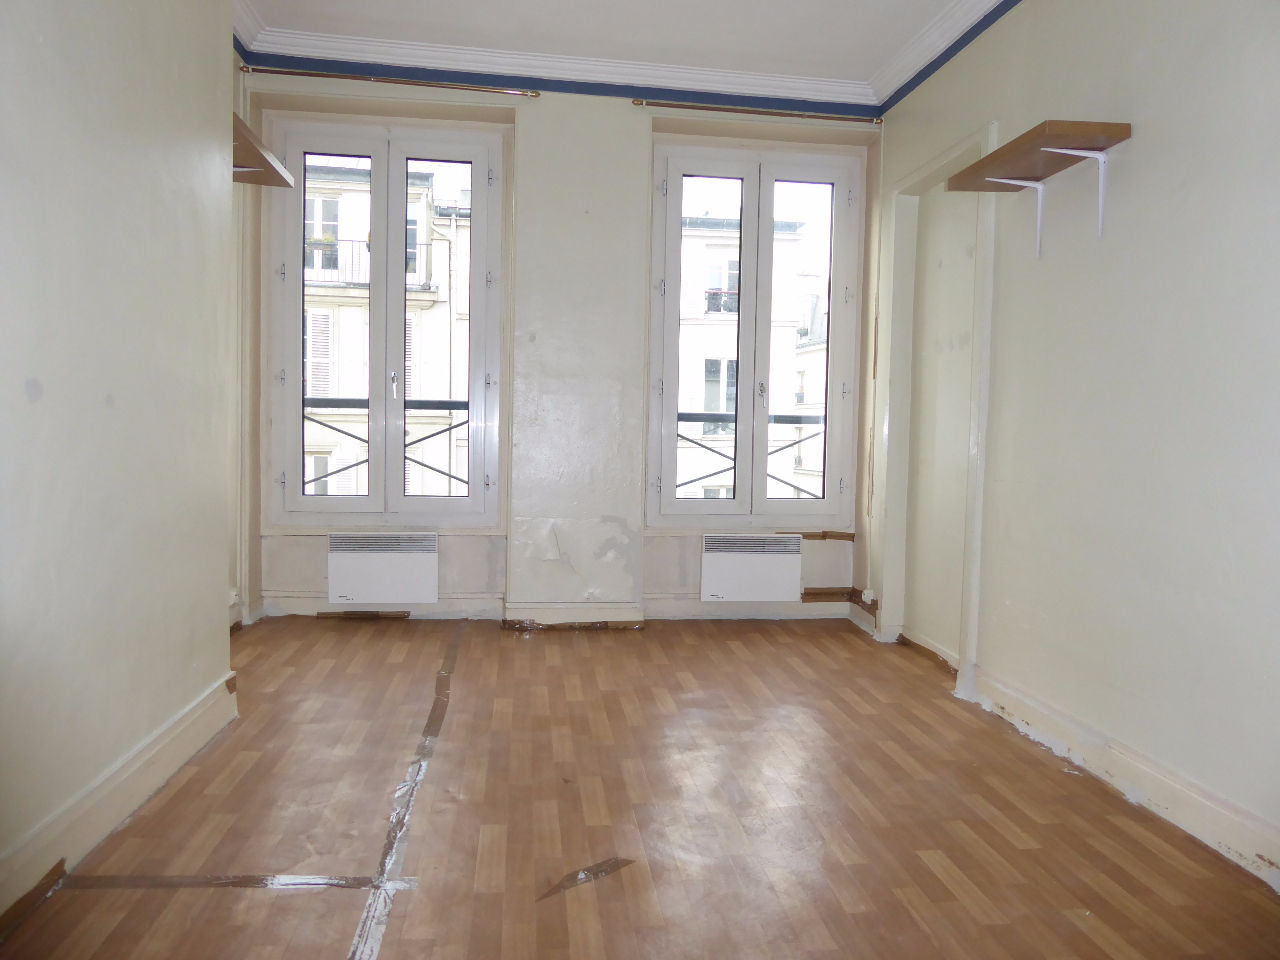 Paris 10ème - Studio de 16.50 m2